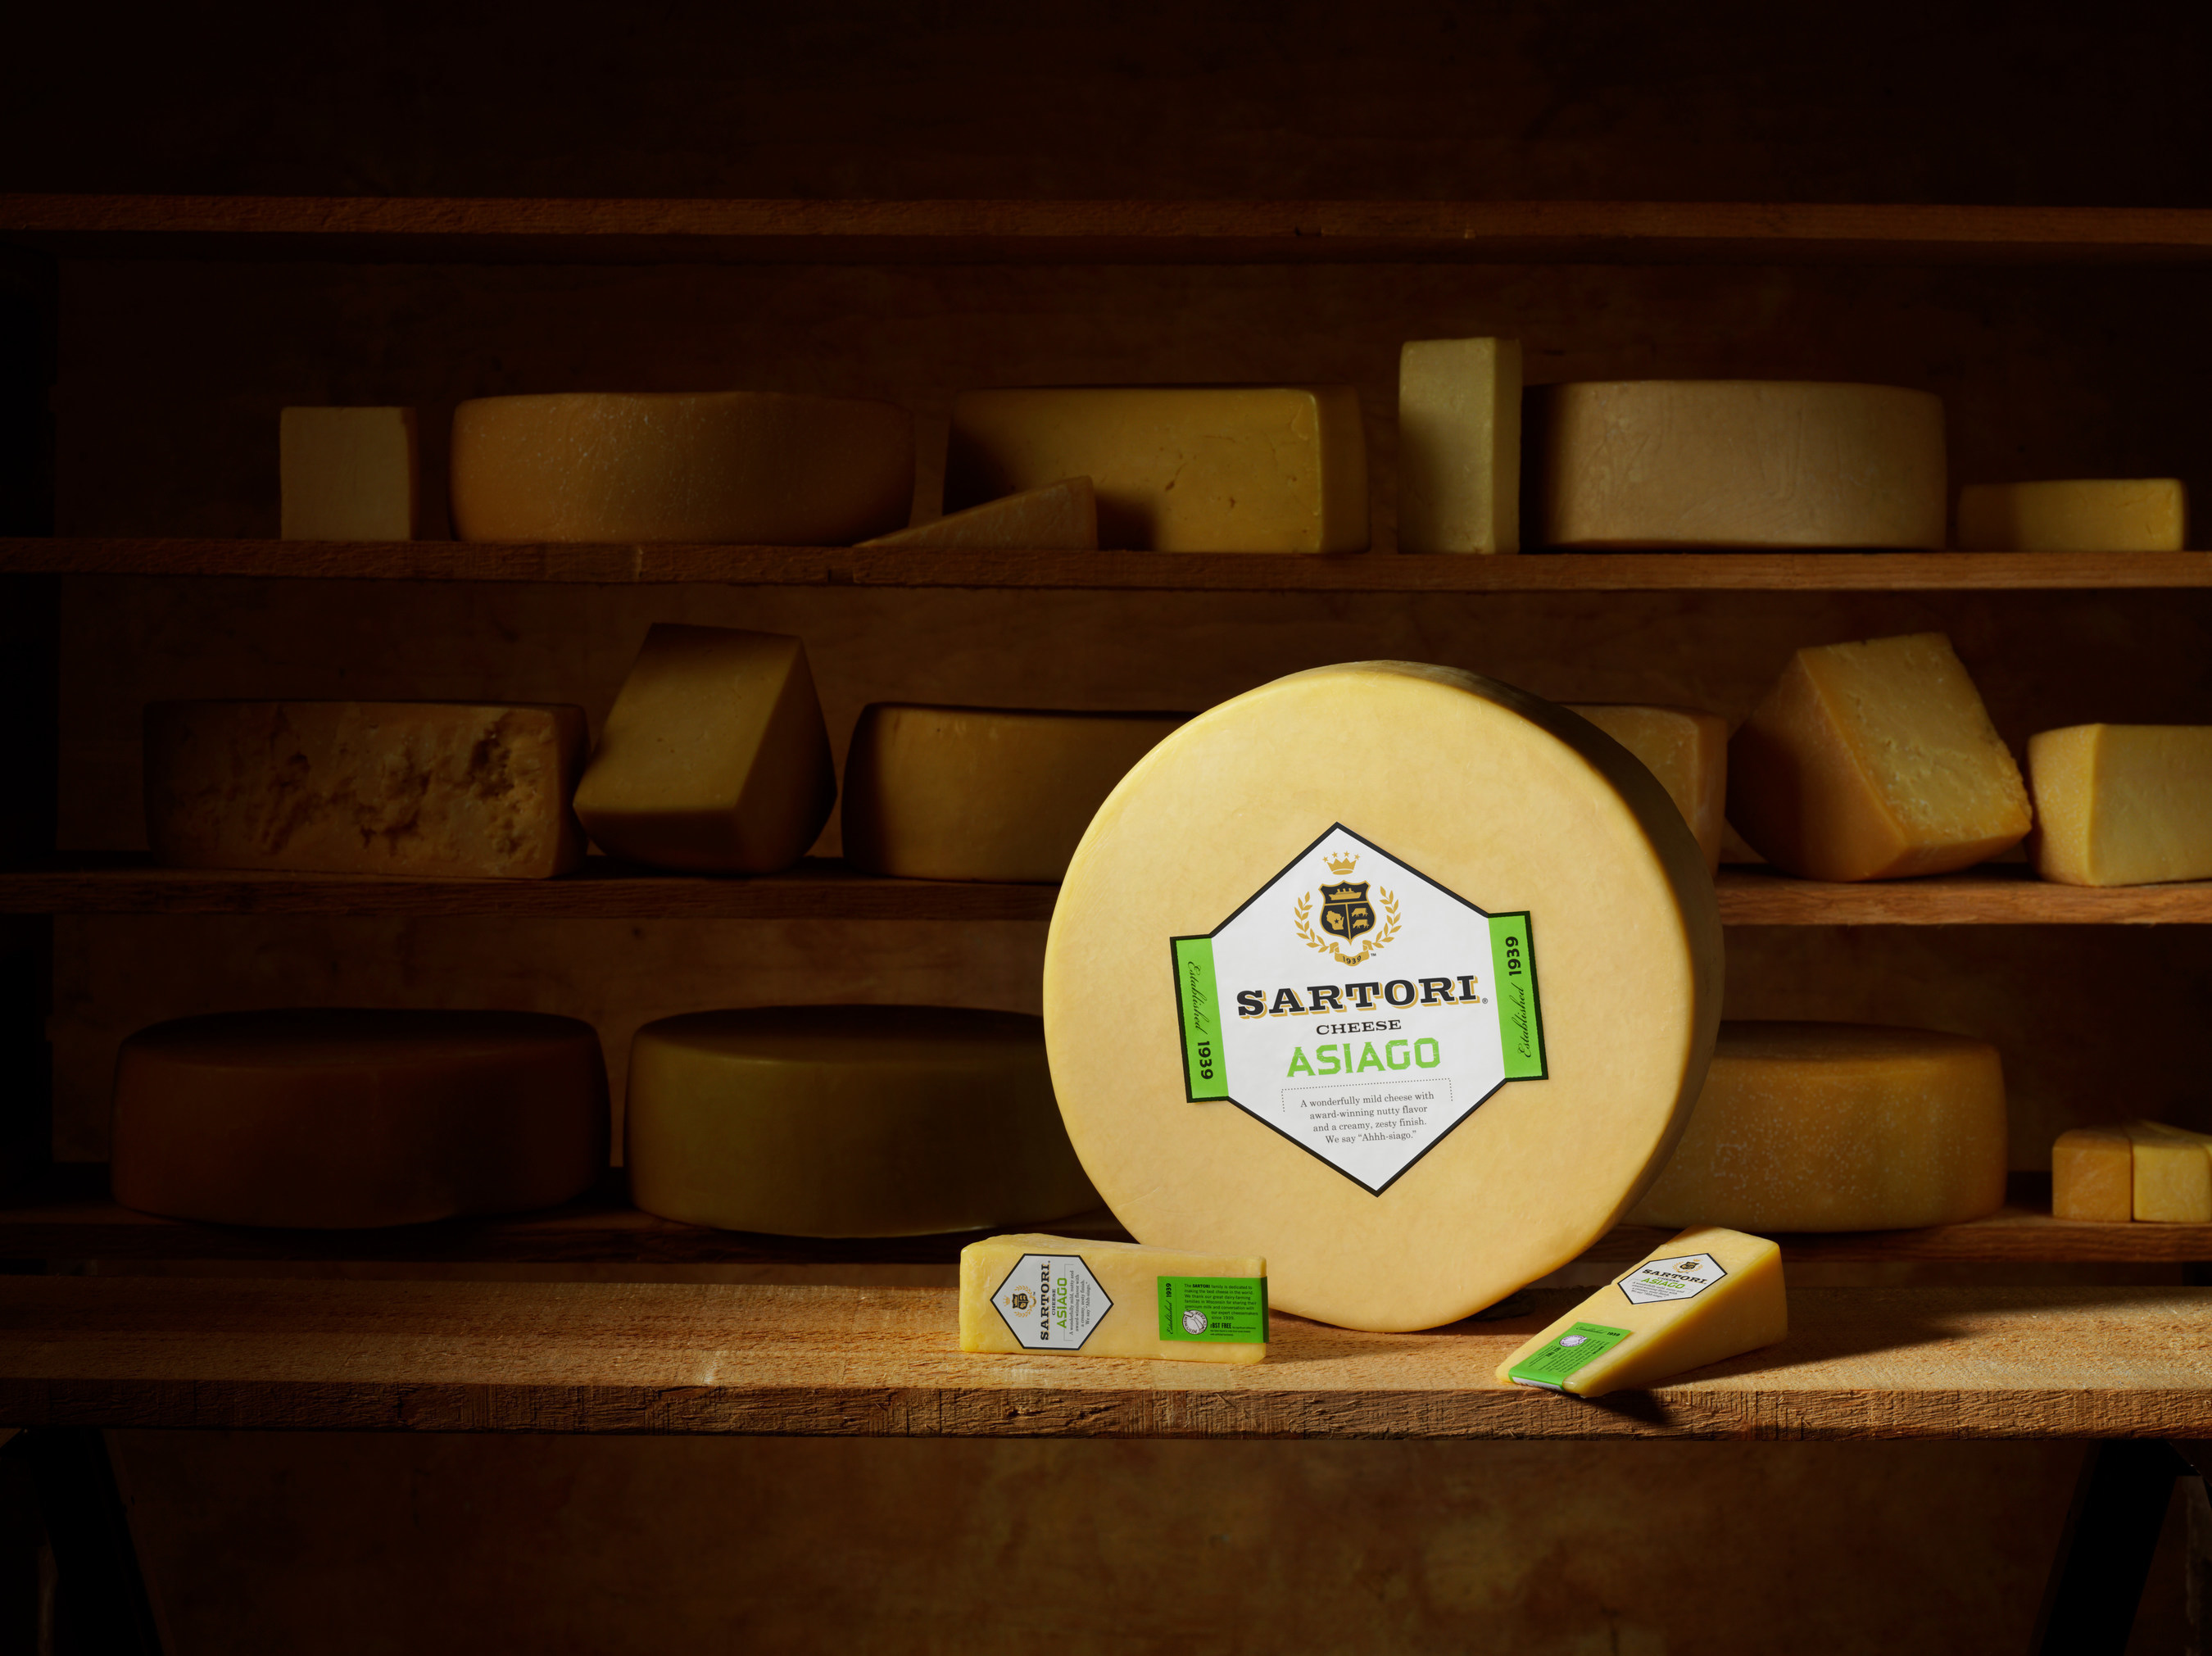 Sartori's Classic Asiago cheese received a first place finish at the Wisconsin State Fair.